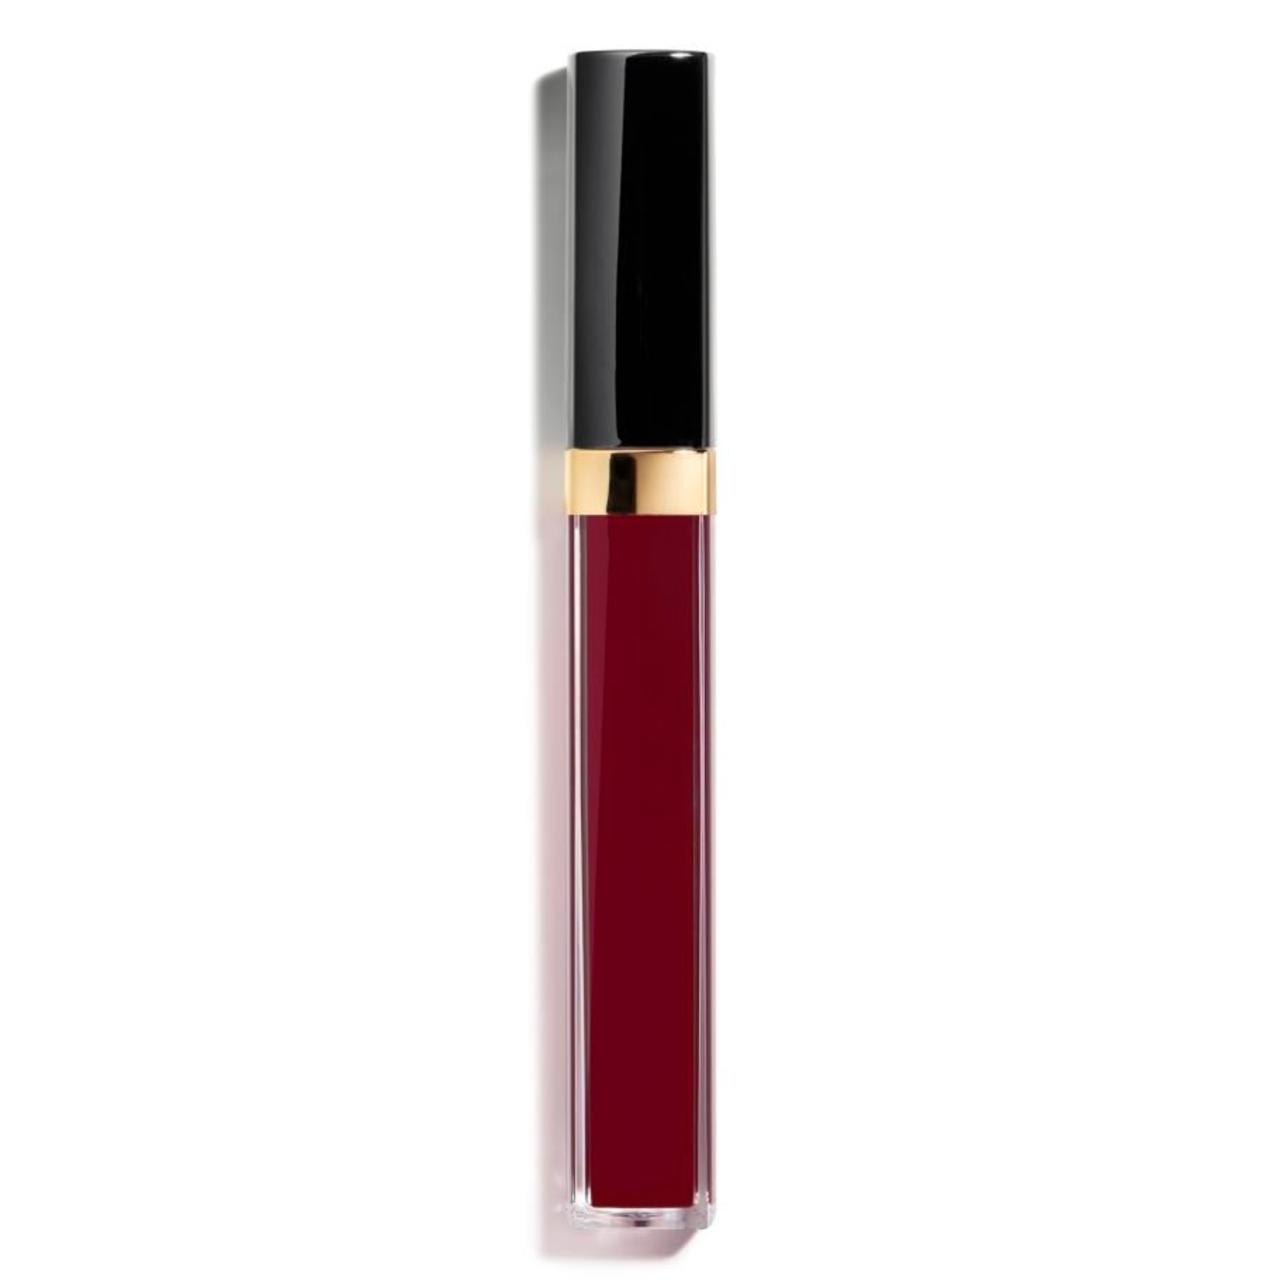 Chanel Rouge Coco Gloss (772 Epique).